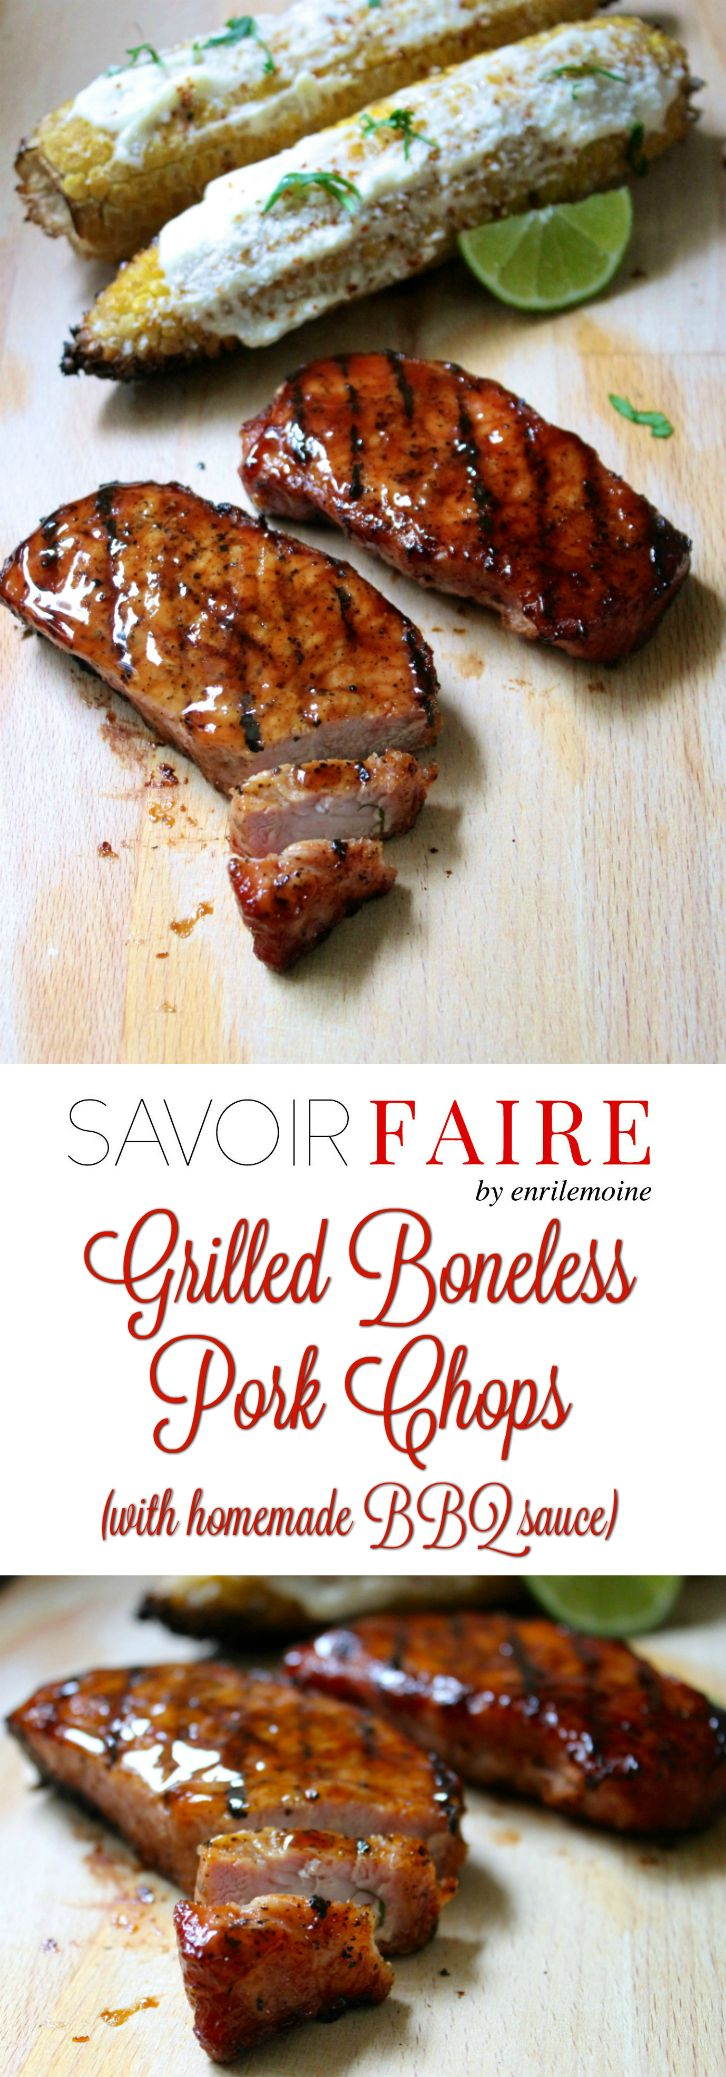 These boneless pork chops were grilled over indirect fire. By adding a few wood chips previously soaked in water to the hot coal, the meat acquires a distinctive delicious smoky flavor. Click for the step-by-step recipe. #Ad #SaborSmithfield via @enrilemoine